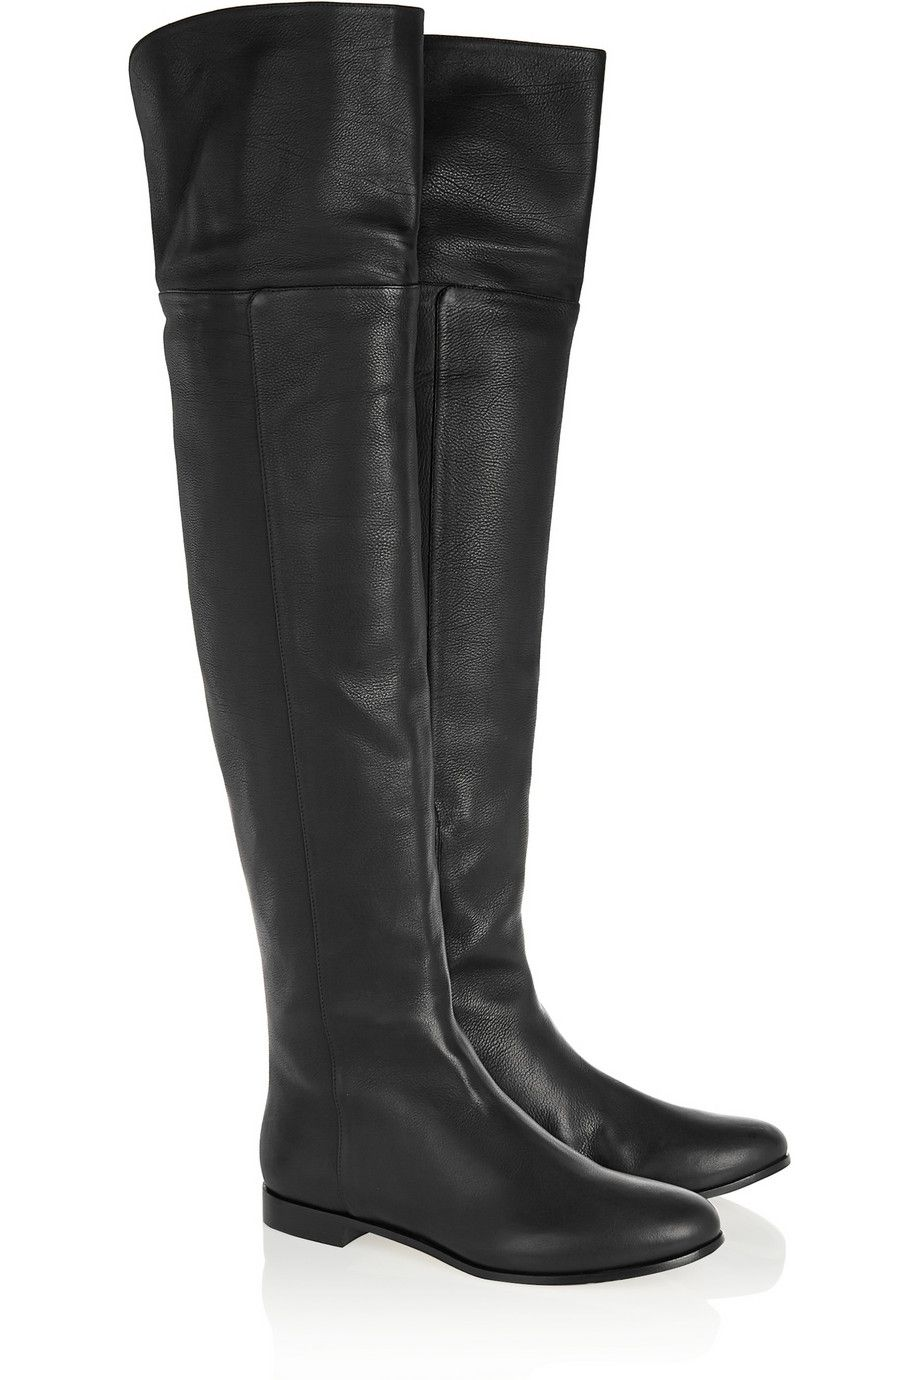 bceb3626688 Jimmy Choo Mitty textured-leather over-the-knee boots